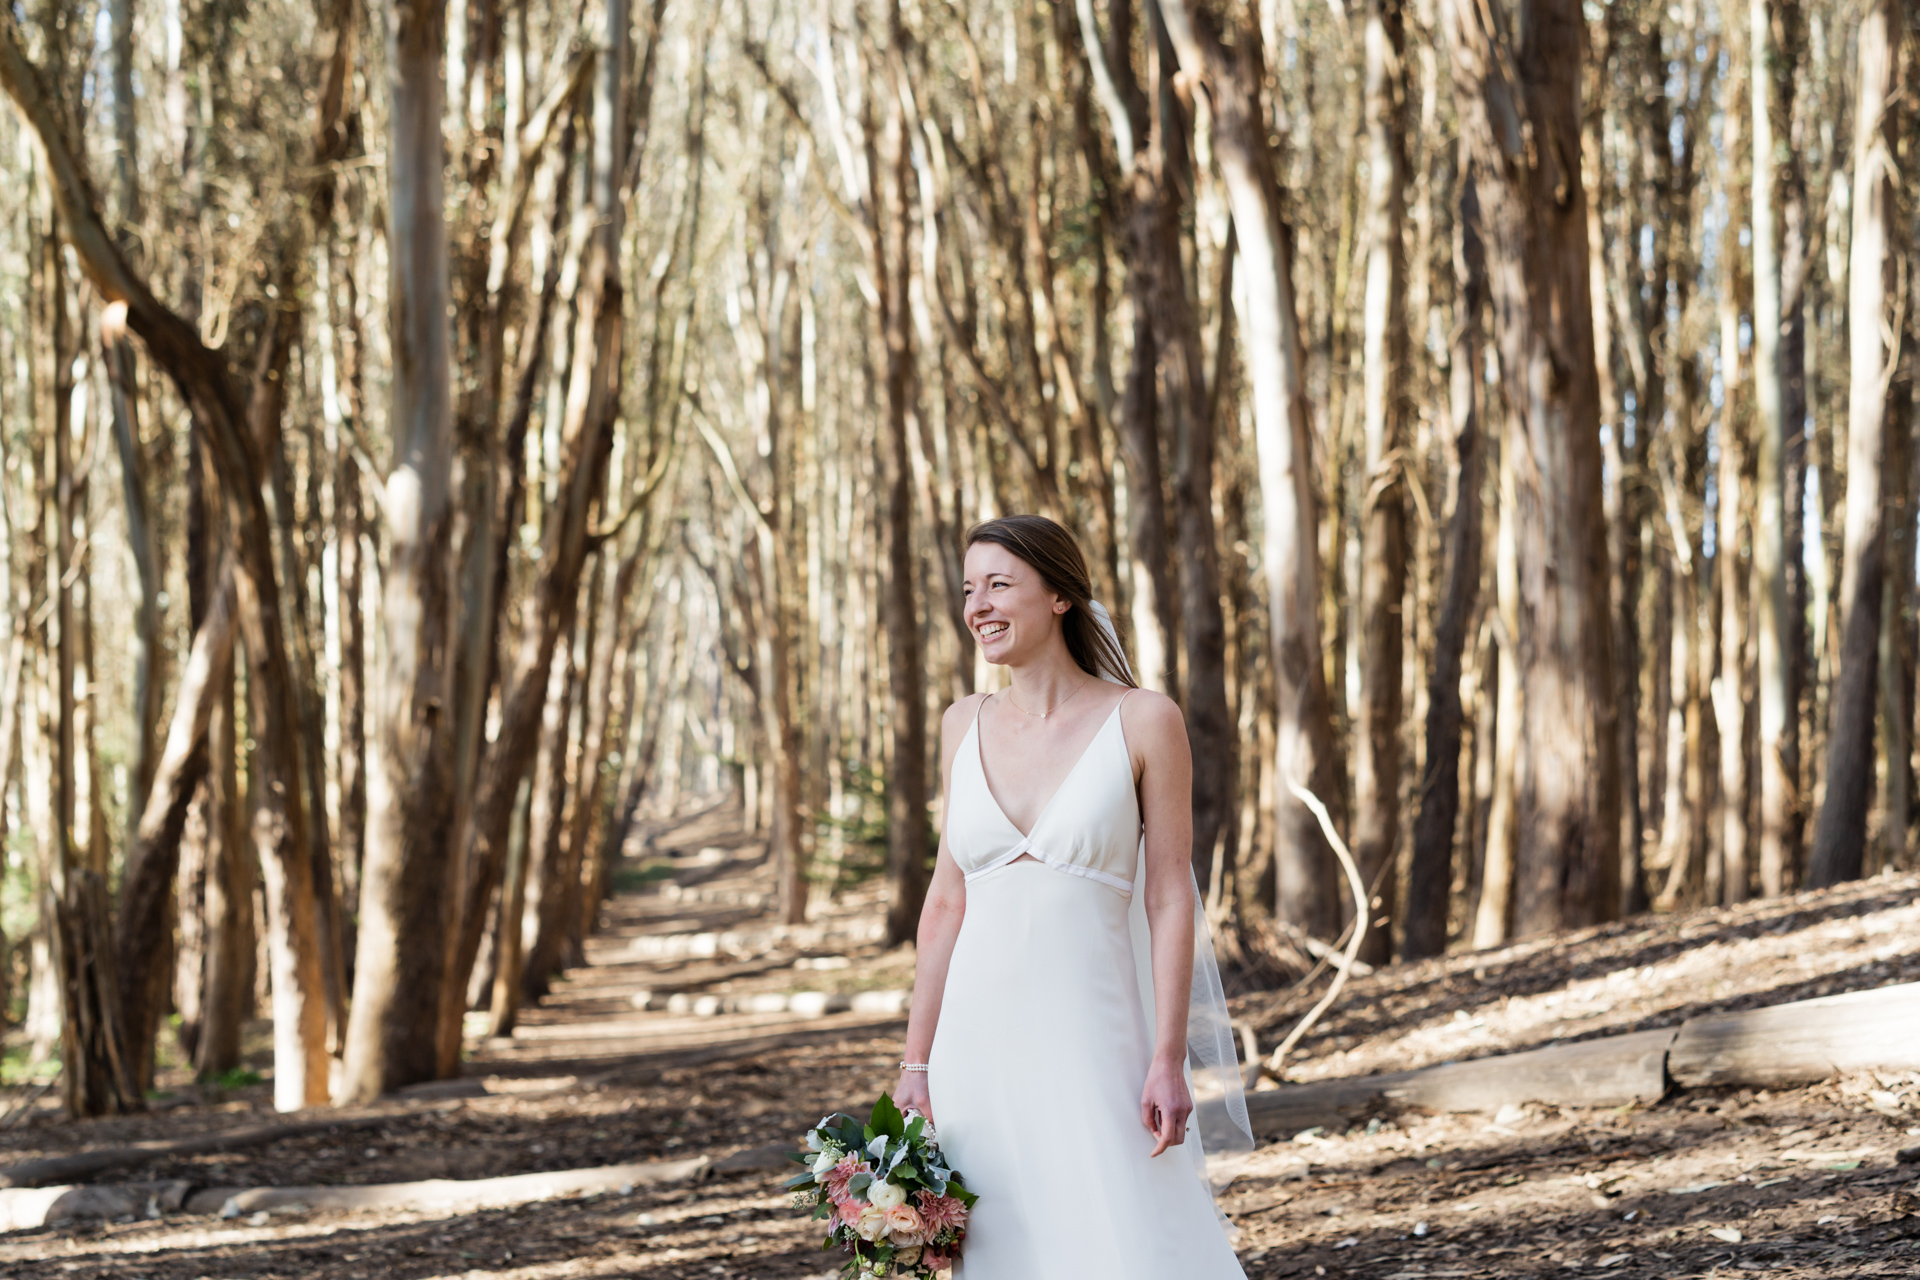 Andy Goldsworthy's Wood Line - Presidio, SF, CA Wedding Pic | Finding joy in the trees